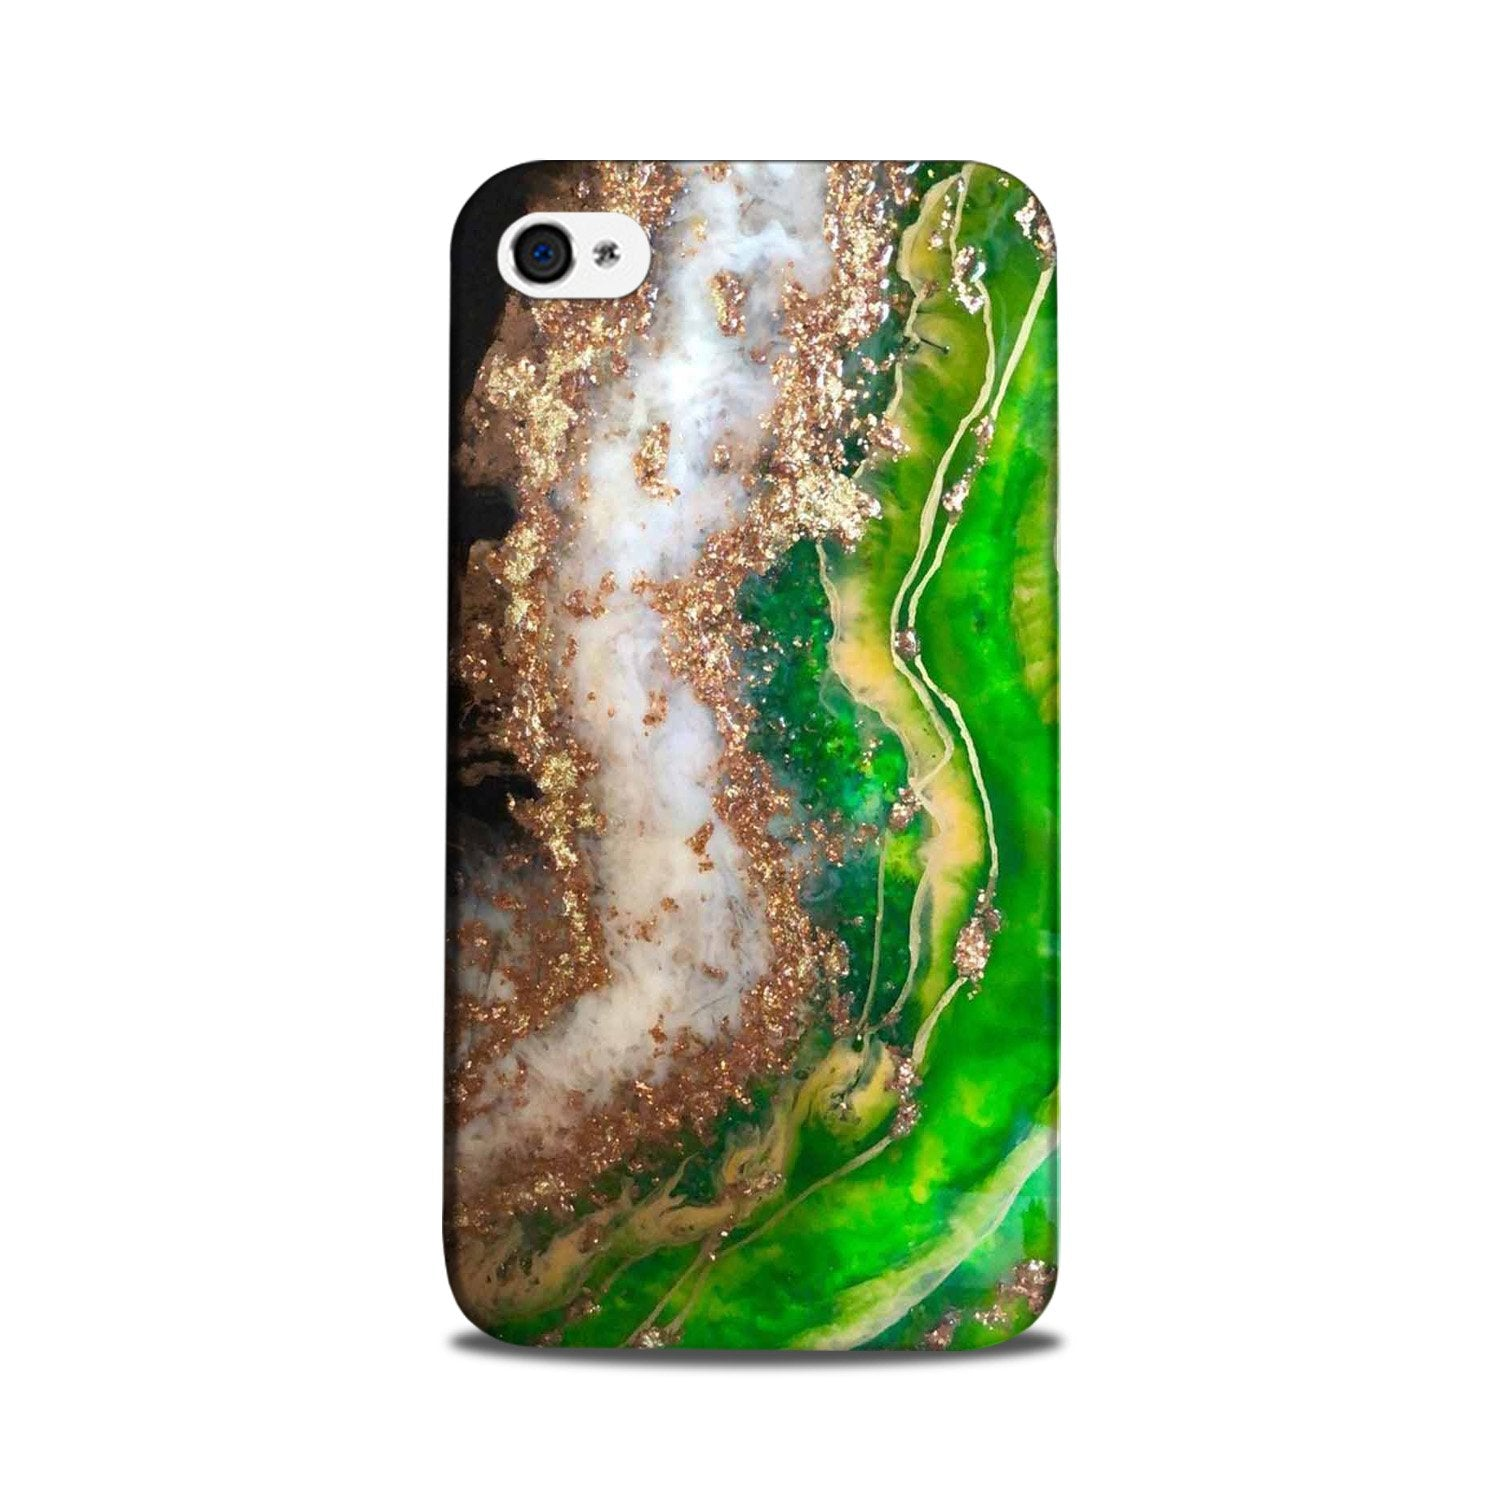 Marble Texture Mobile Back Case for iPhone 5/ 5s  (Design - 307)